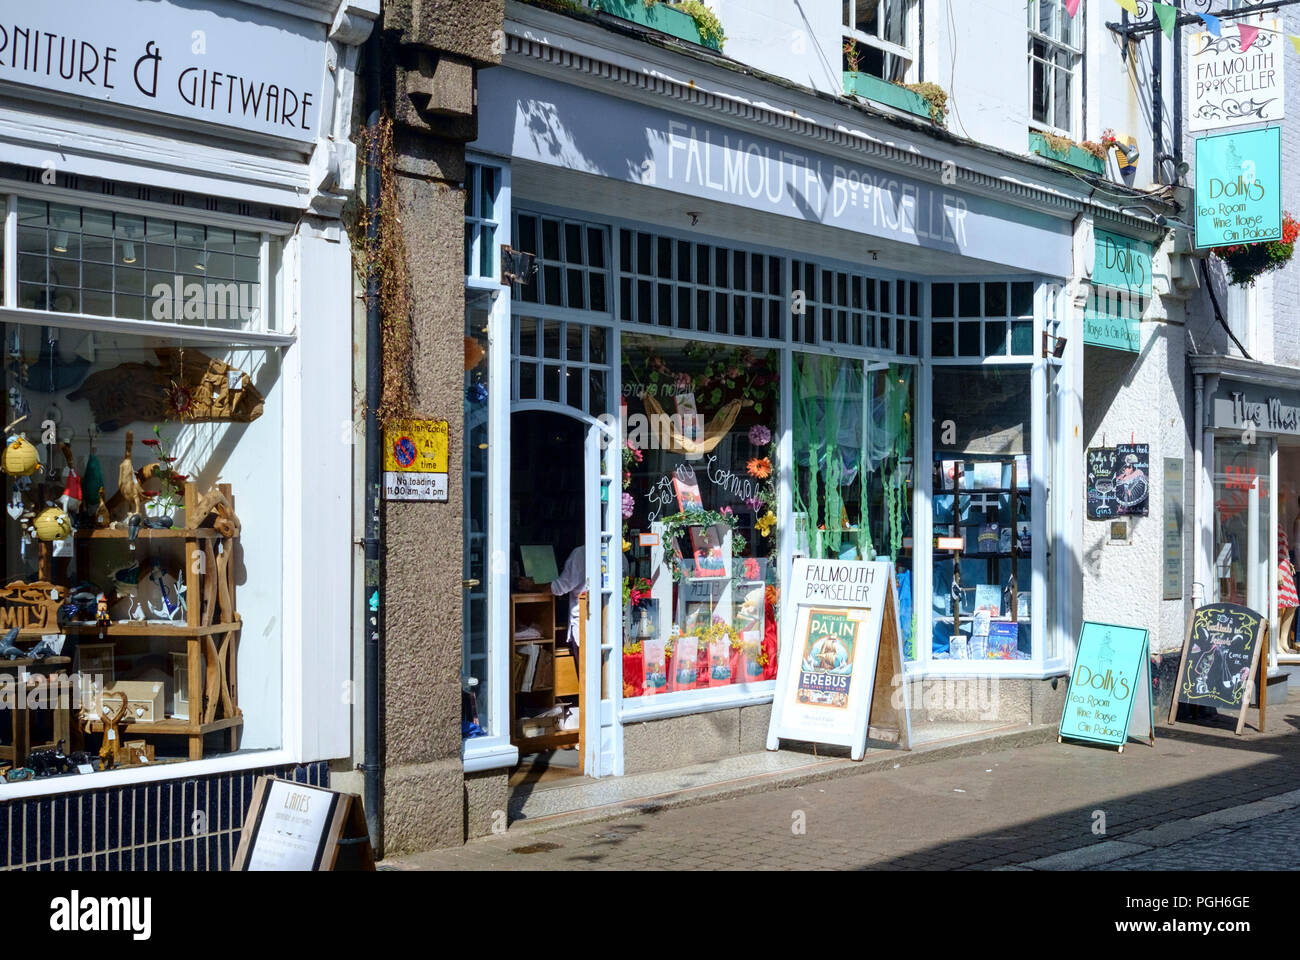 Falmouth a coastal town and Port in Cornwall England UK The Falmouth Bookseller - Stock Image